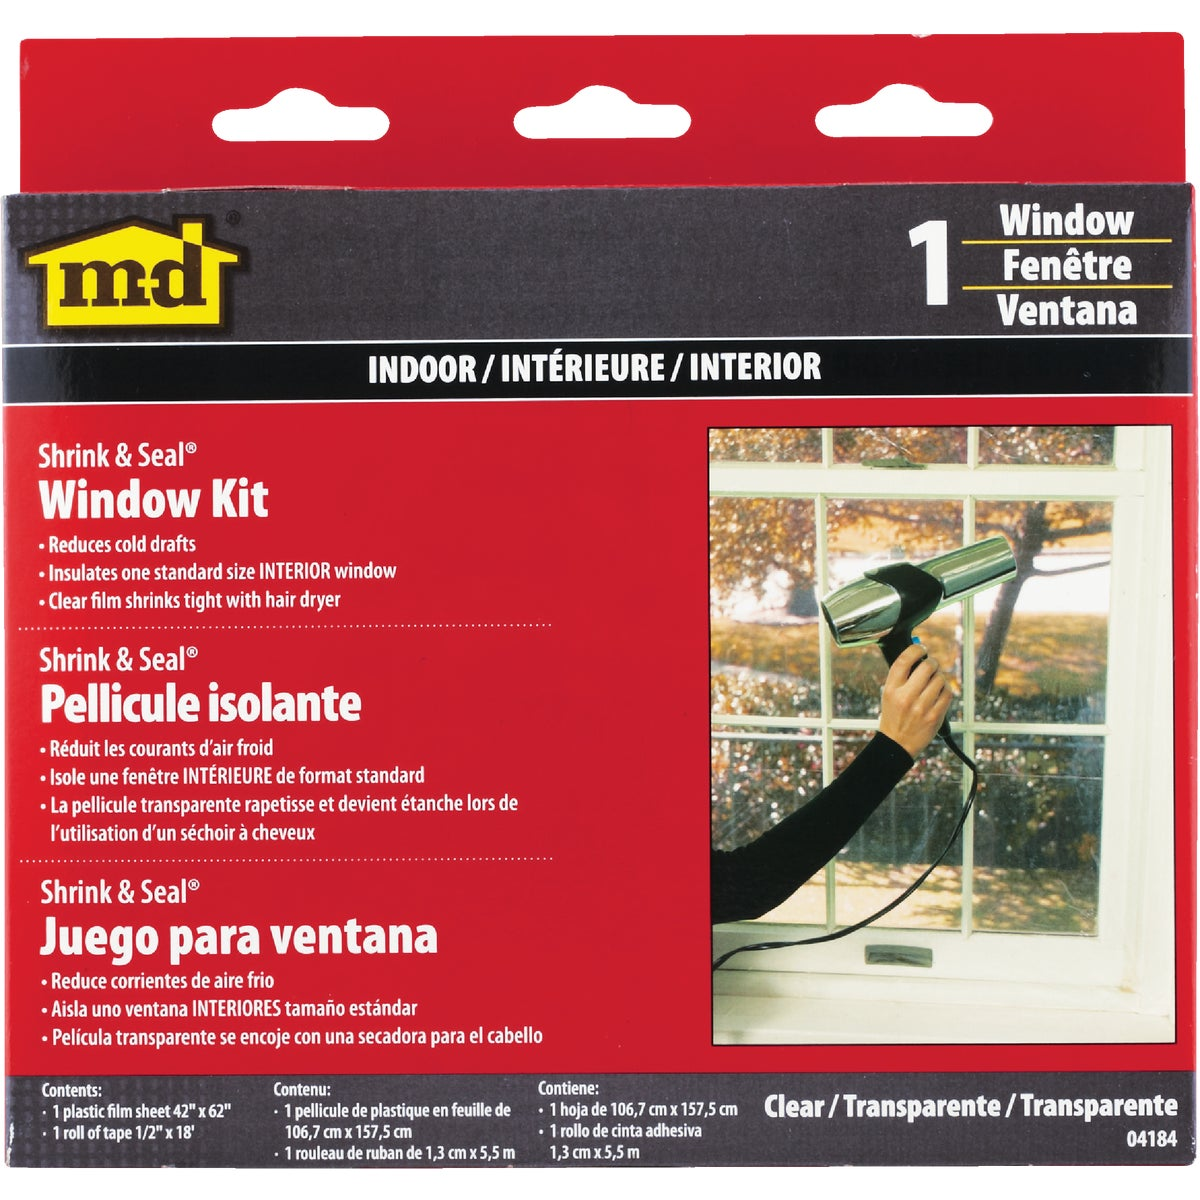 SHRINK&SEAL WINDOW KIT - 04184 by M D Building Prod